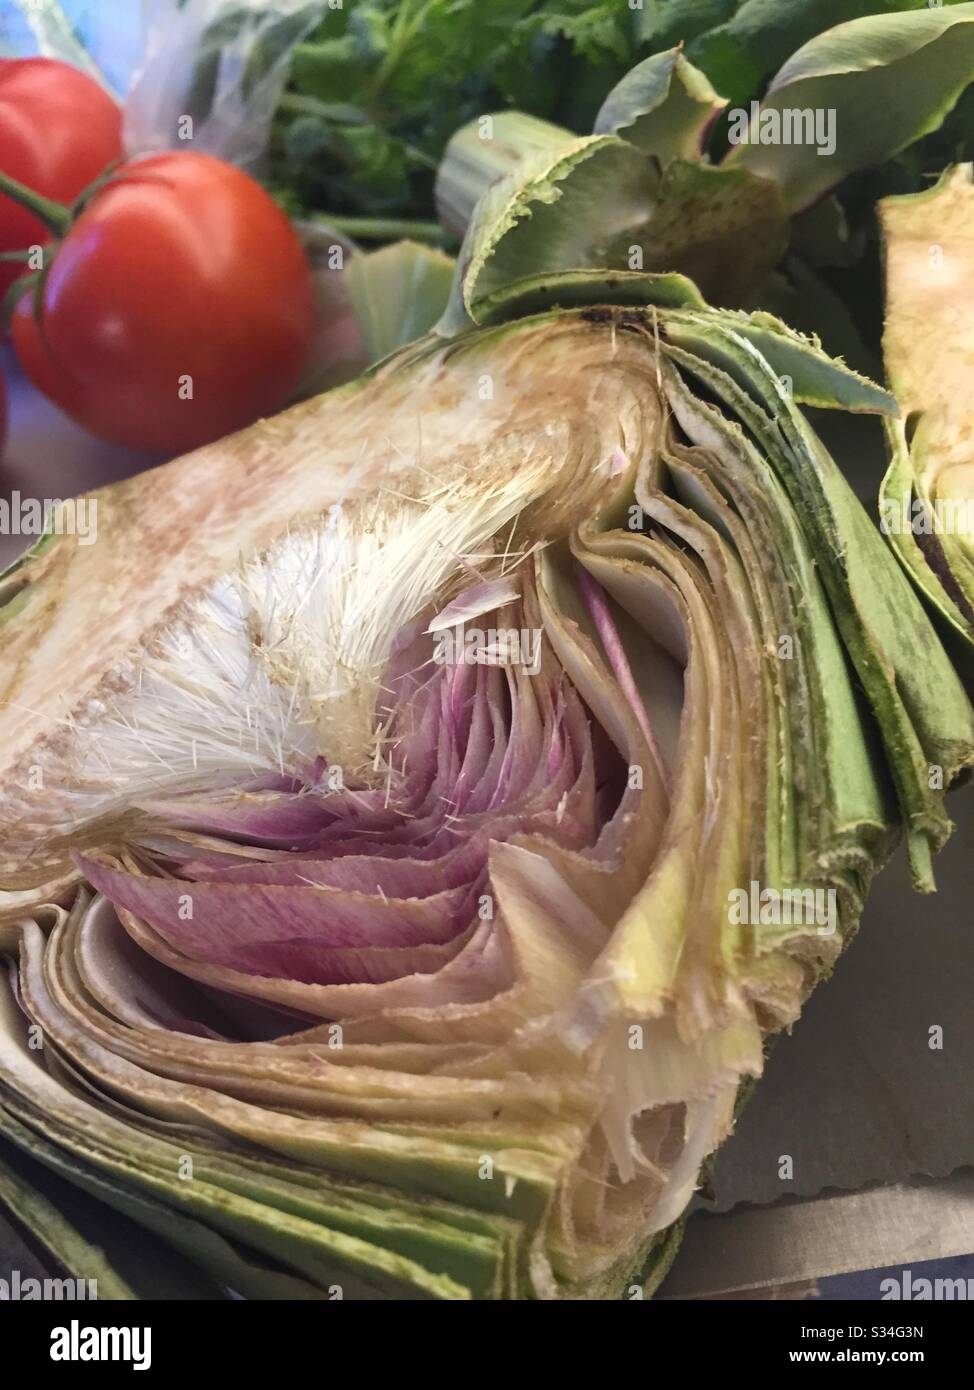 Still life of a cut in half artichoke and other vegetables on a cutting board in a residential kitchen, USA Stock Photo